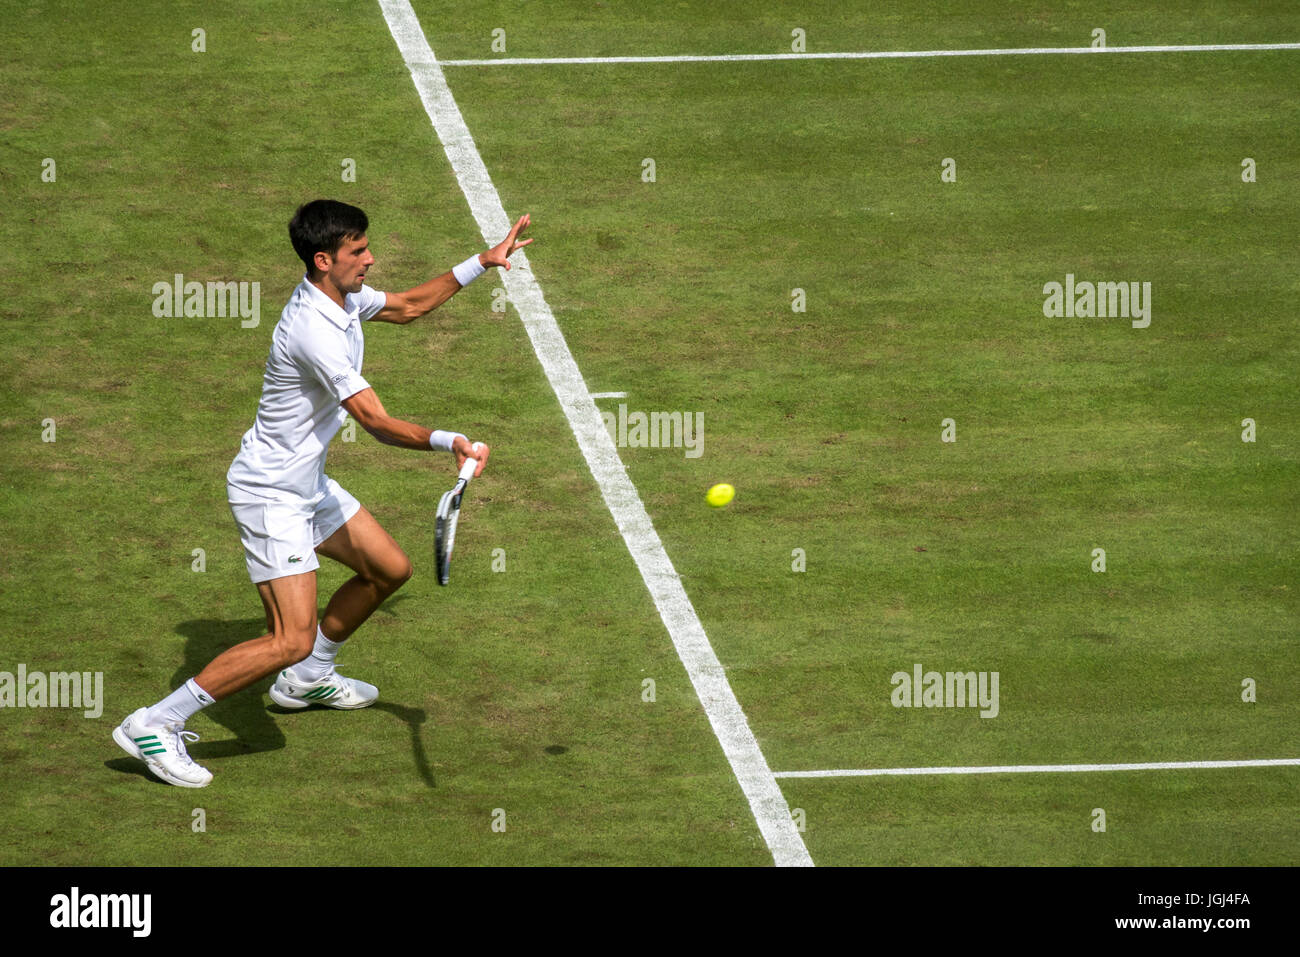 Novak Djokovic returns ball on Centre Court Wimbledon tennis championship 2017, London, England, UK - Stock Image